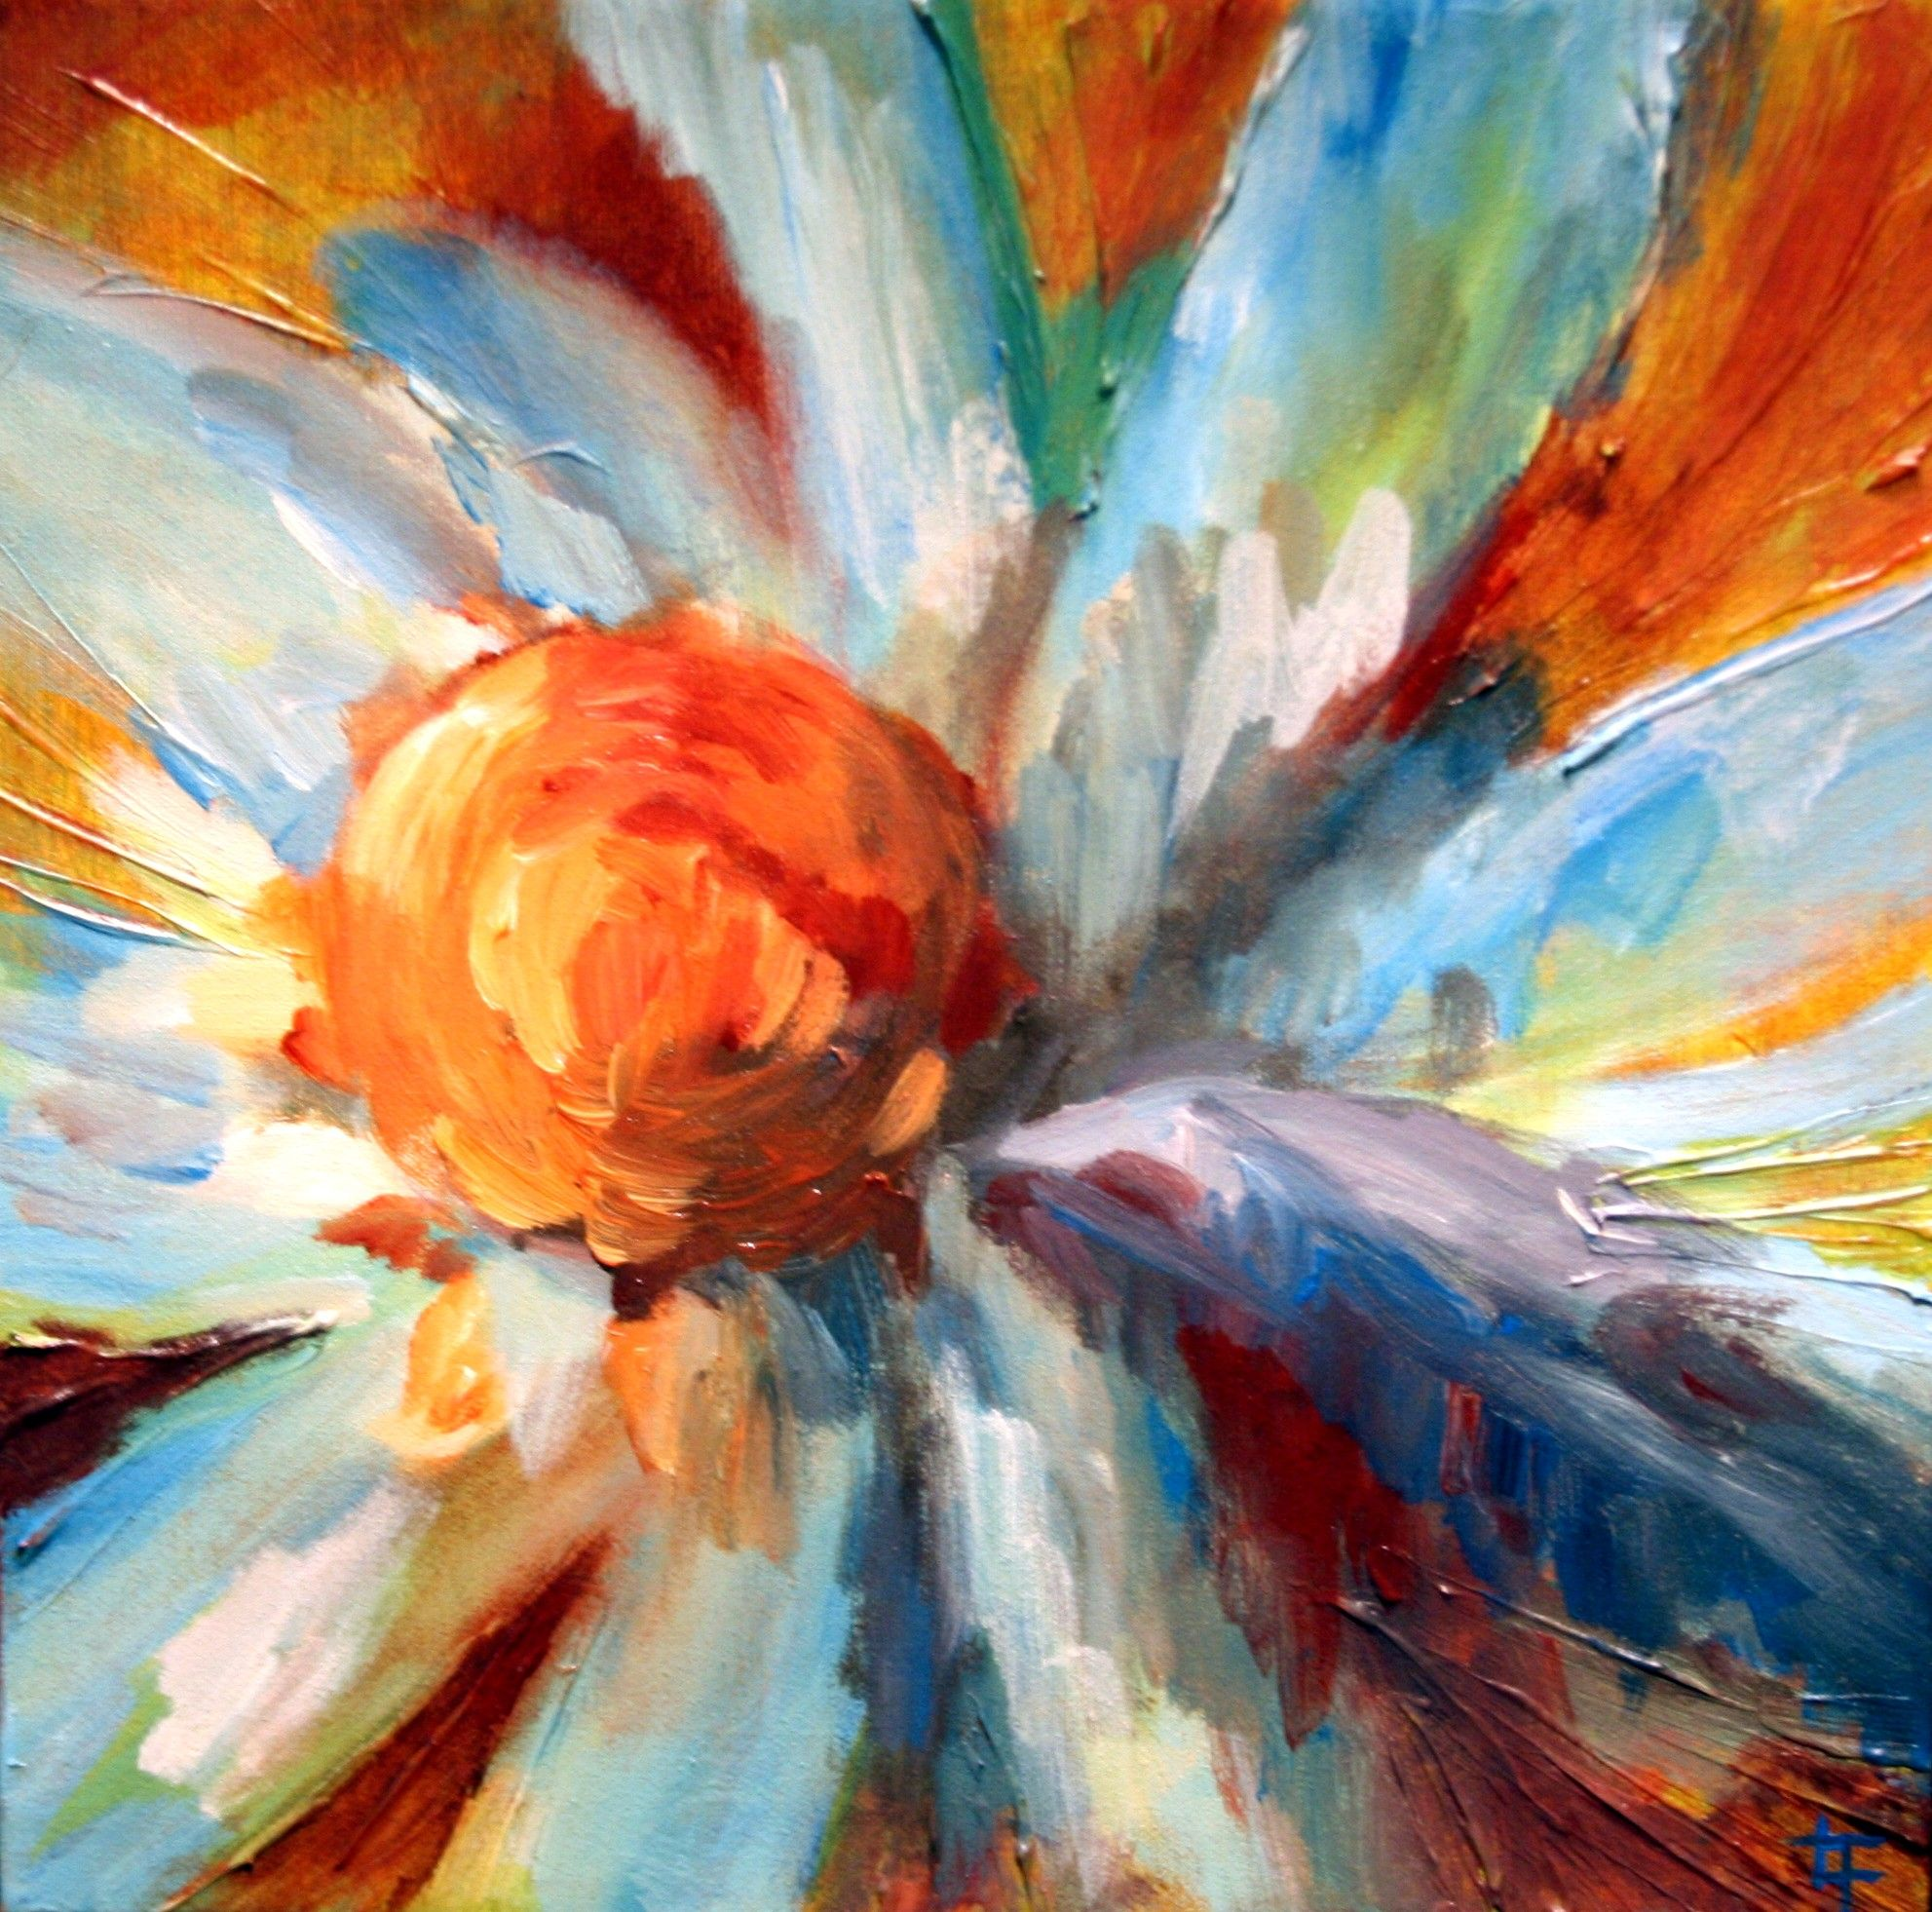 Caring for your painting abstract flower art flower art